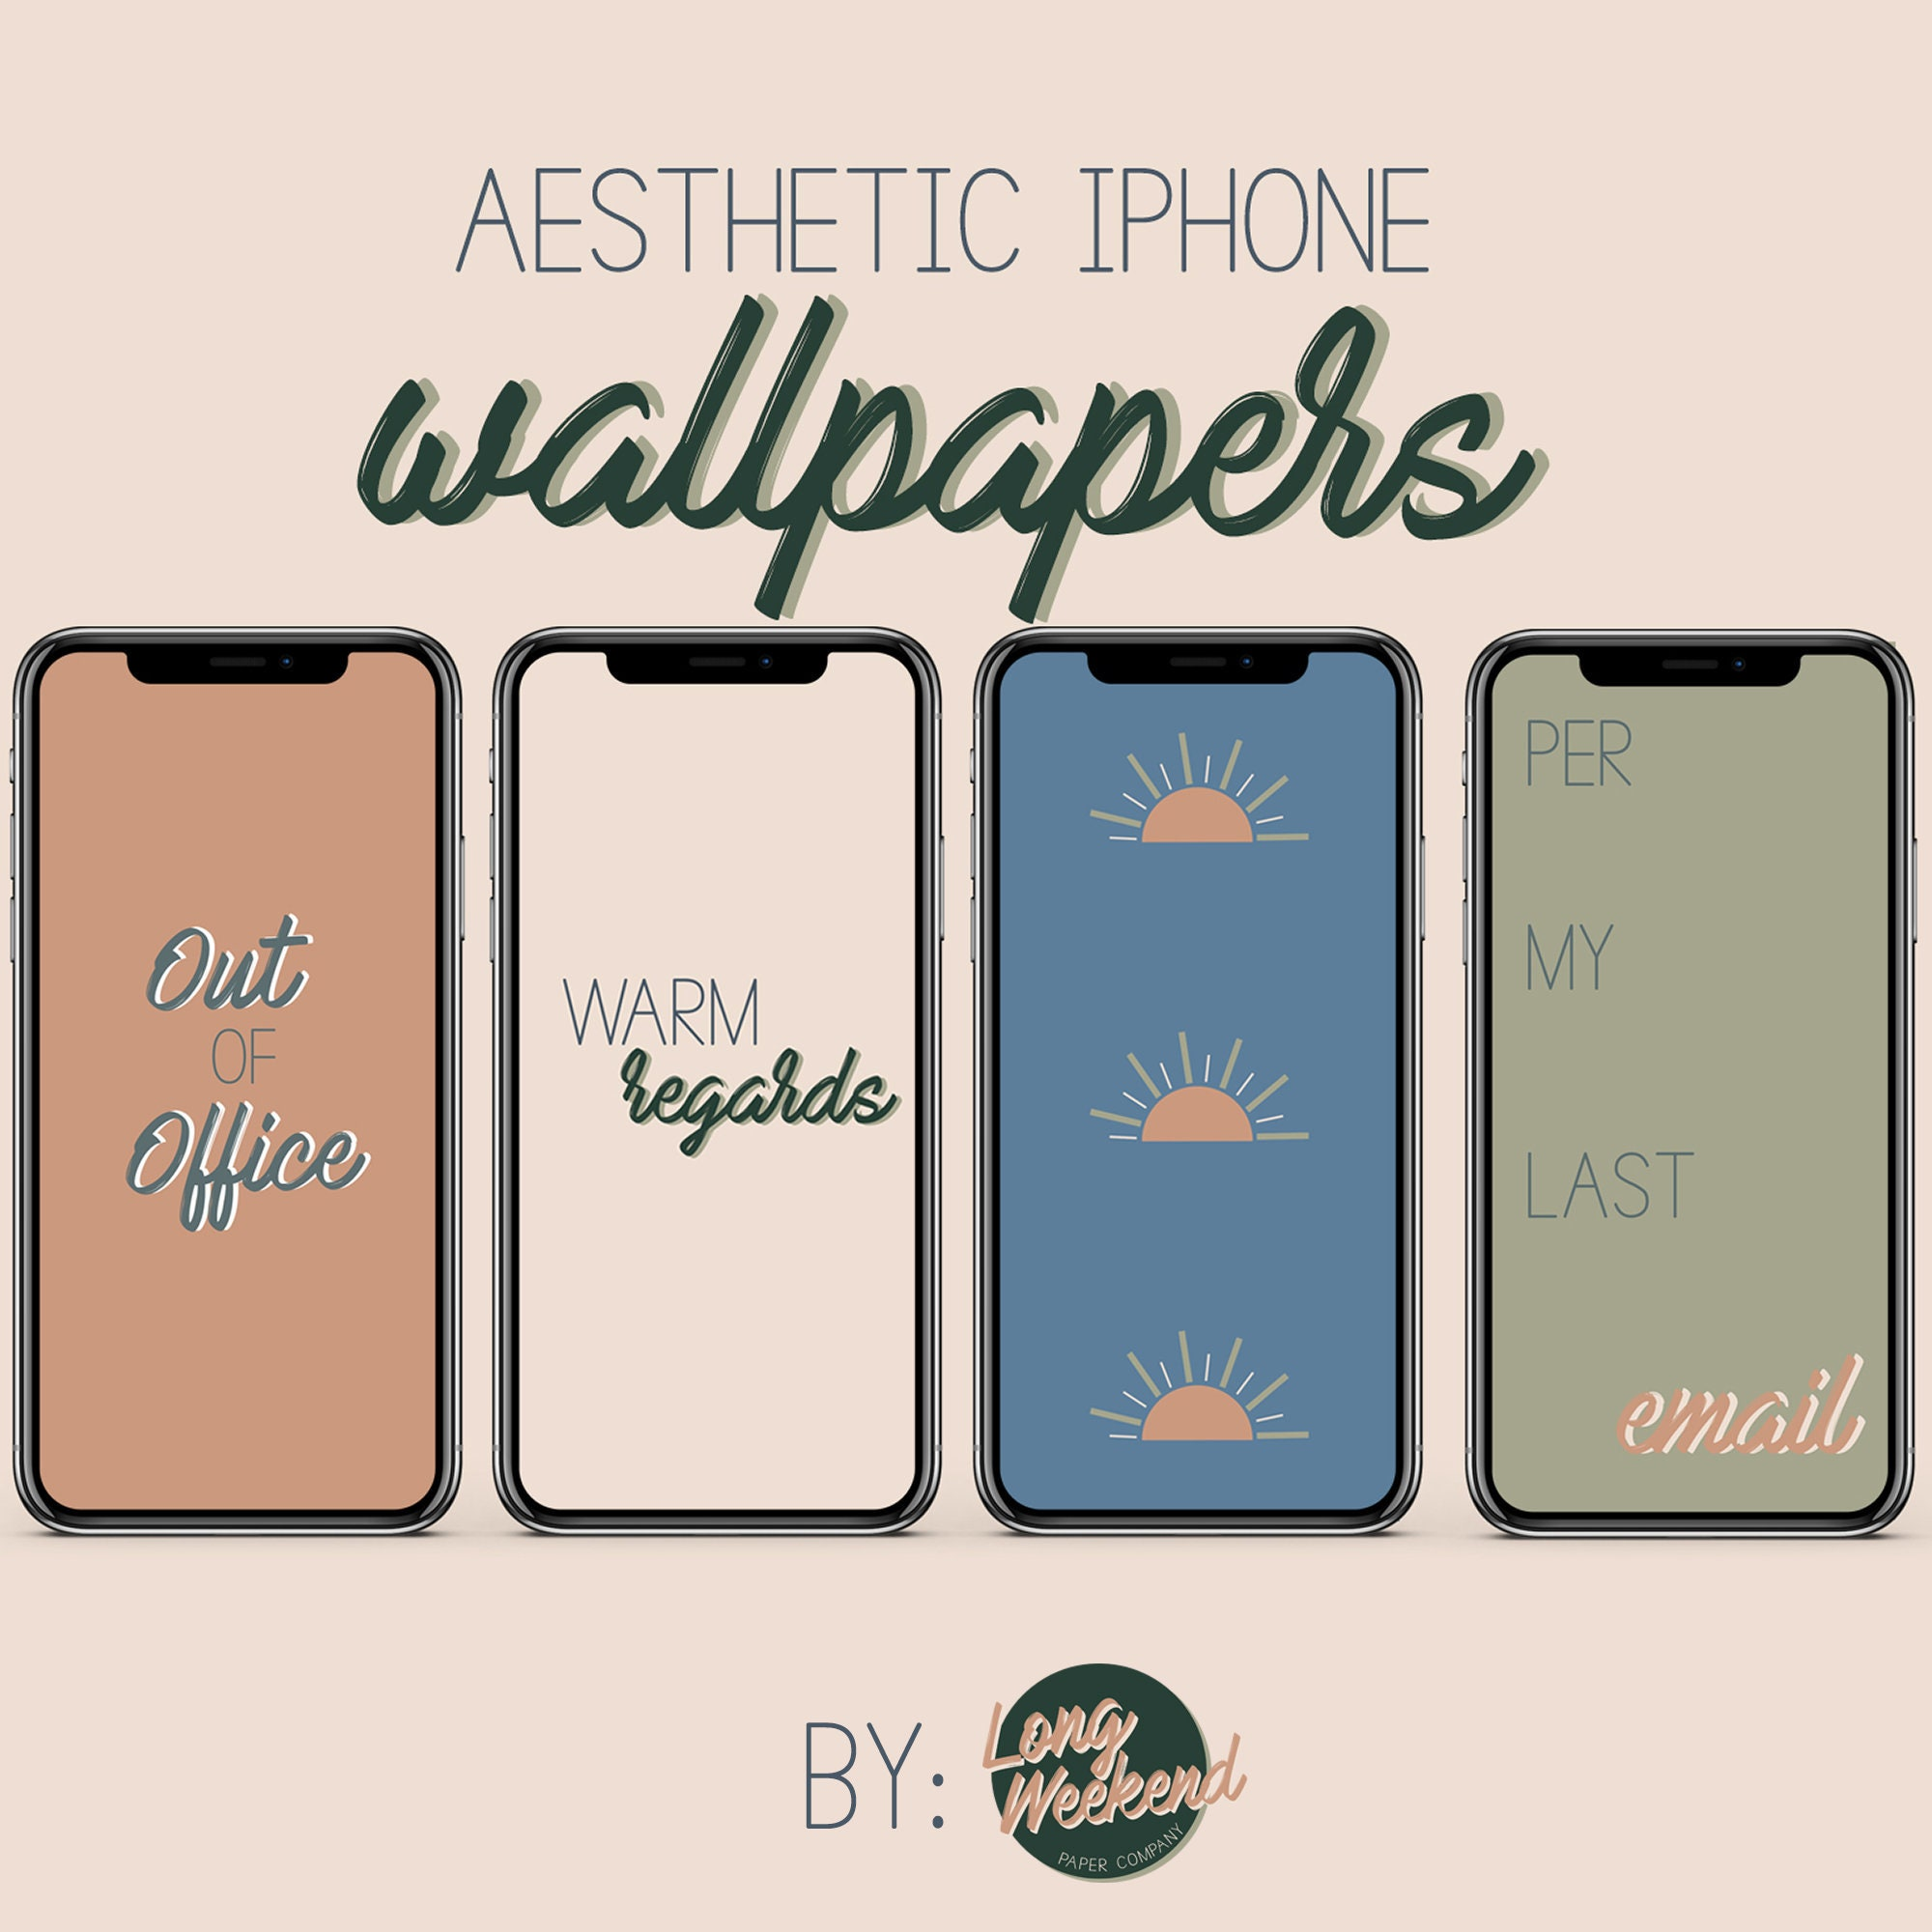 Aesthetic iPhone Wallpapers   Neutral iPhone Wallpaper   Simple iPhone  Wallpaper Design   Sassy iPhone Wallpapers   iPhone Background